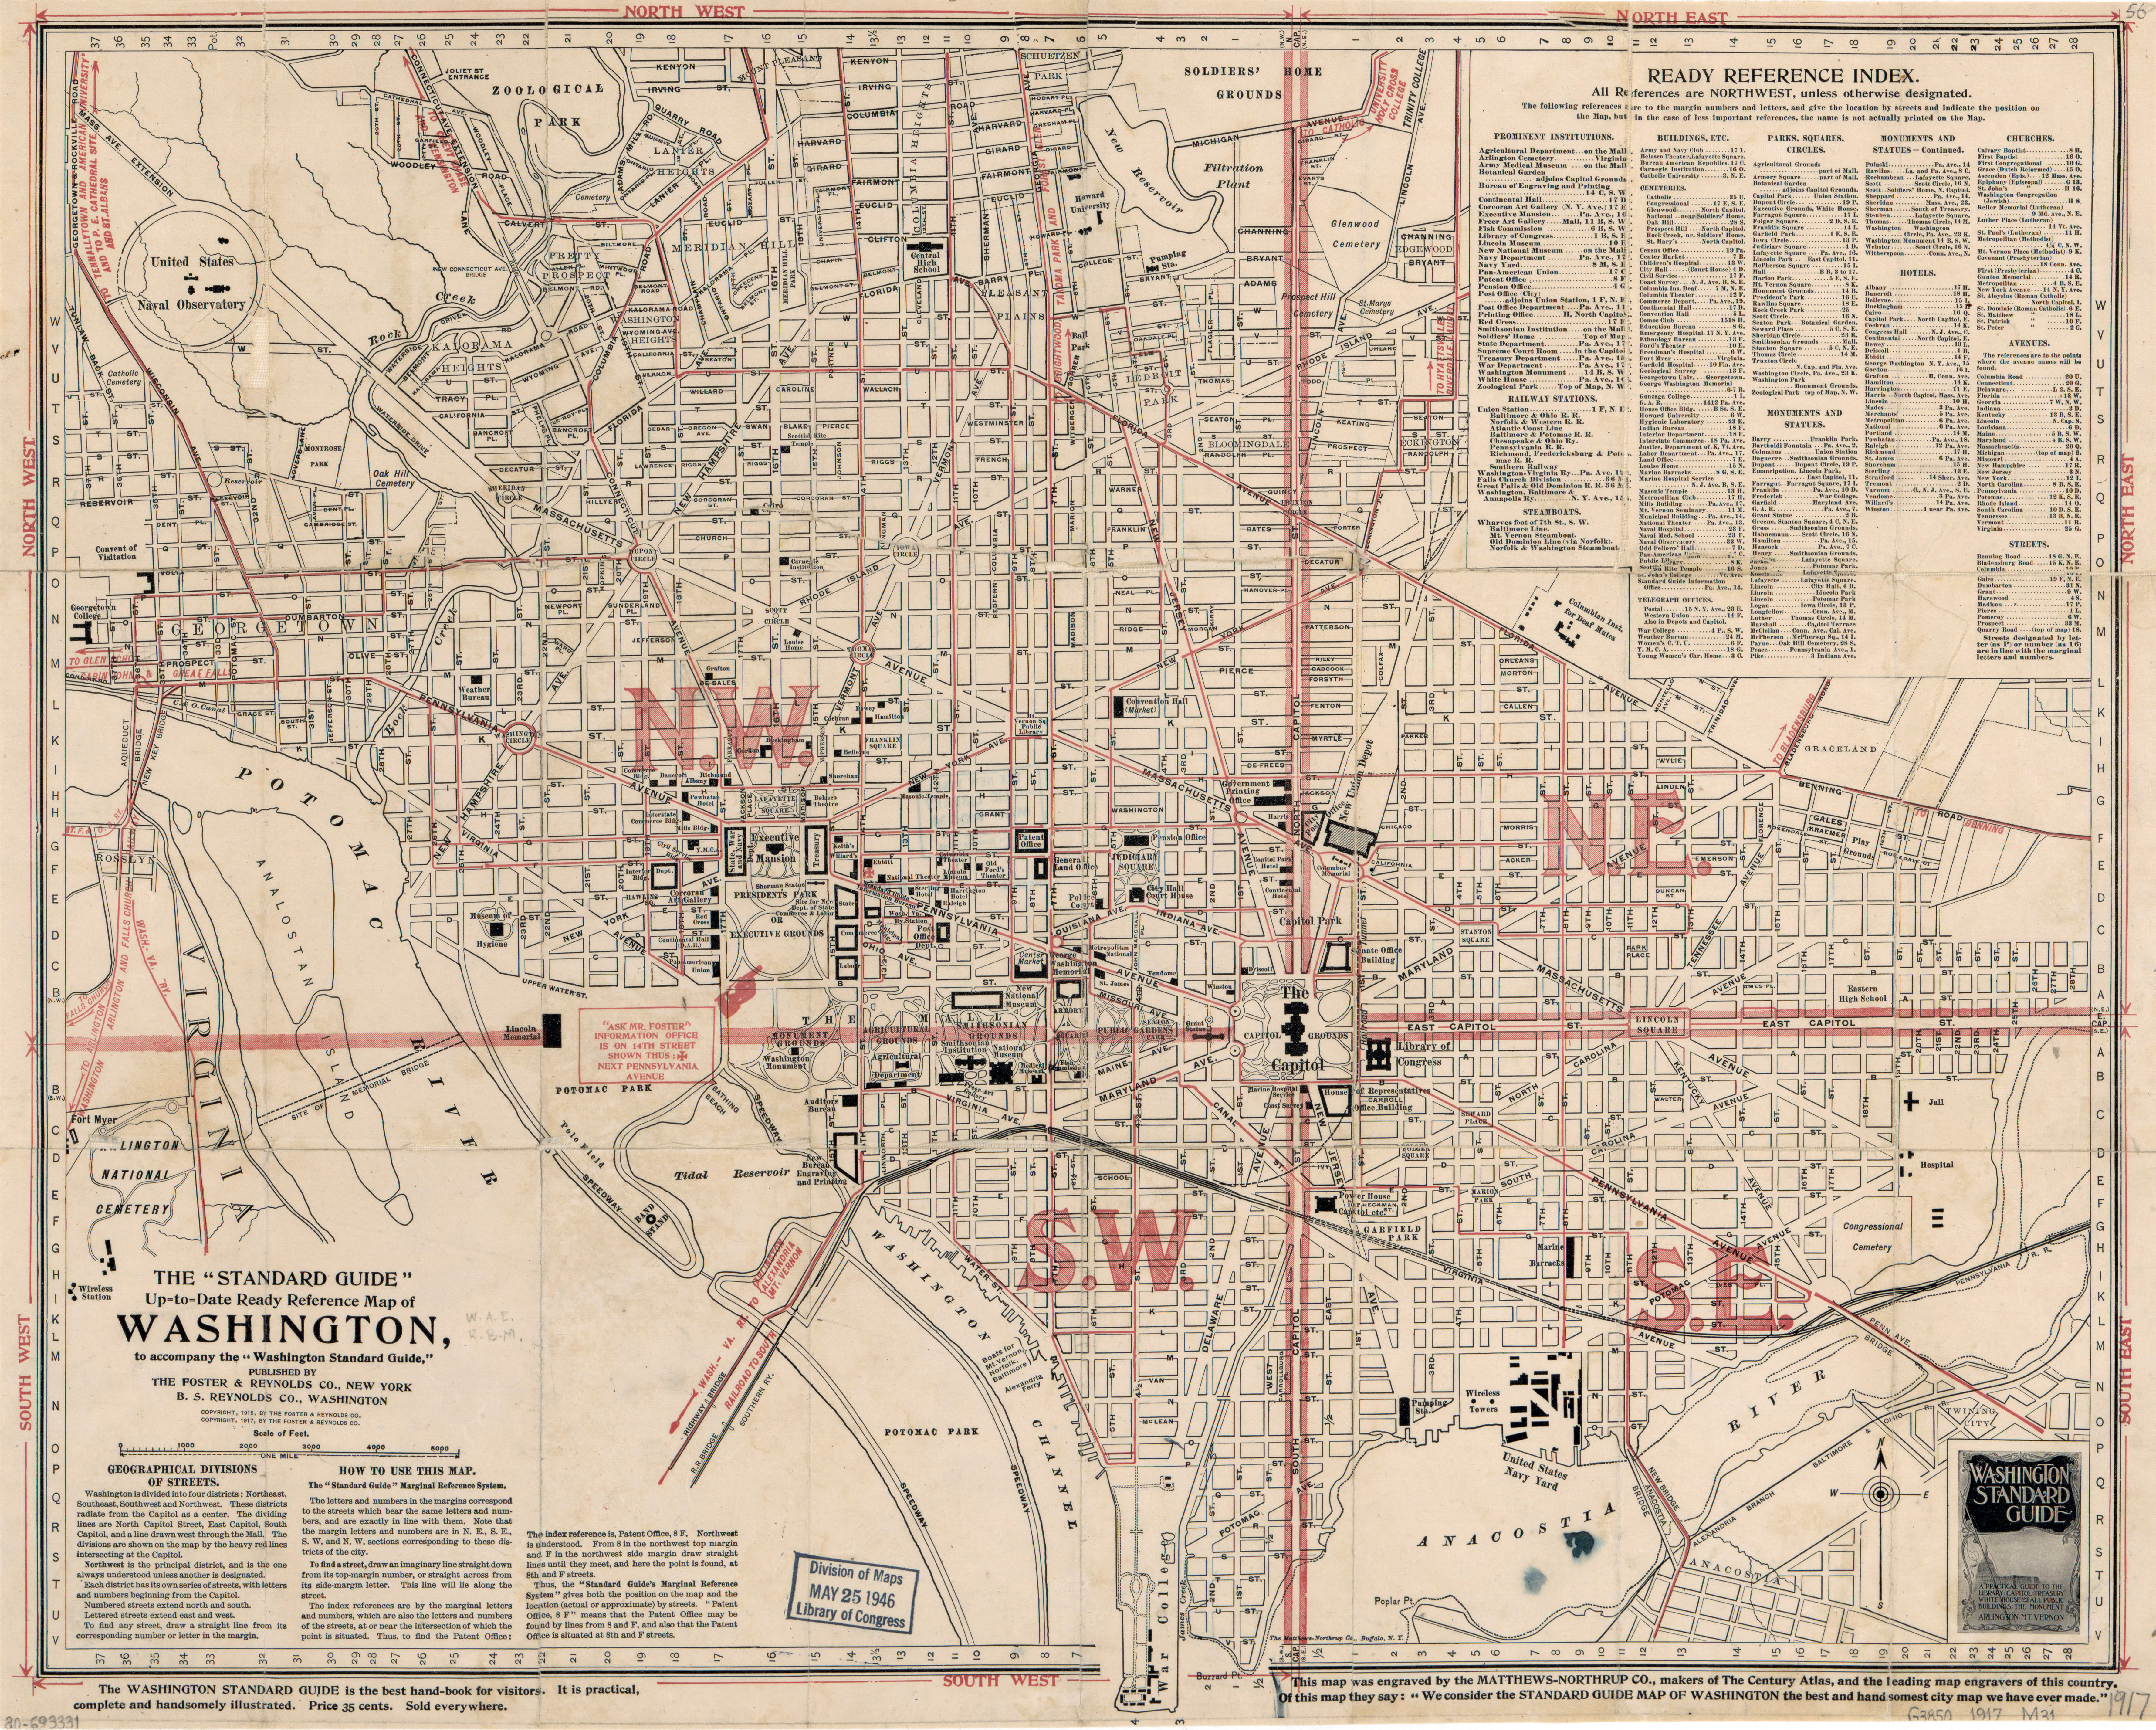 Large Scale Old Washington D C Standard Guide Map 1917